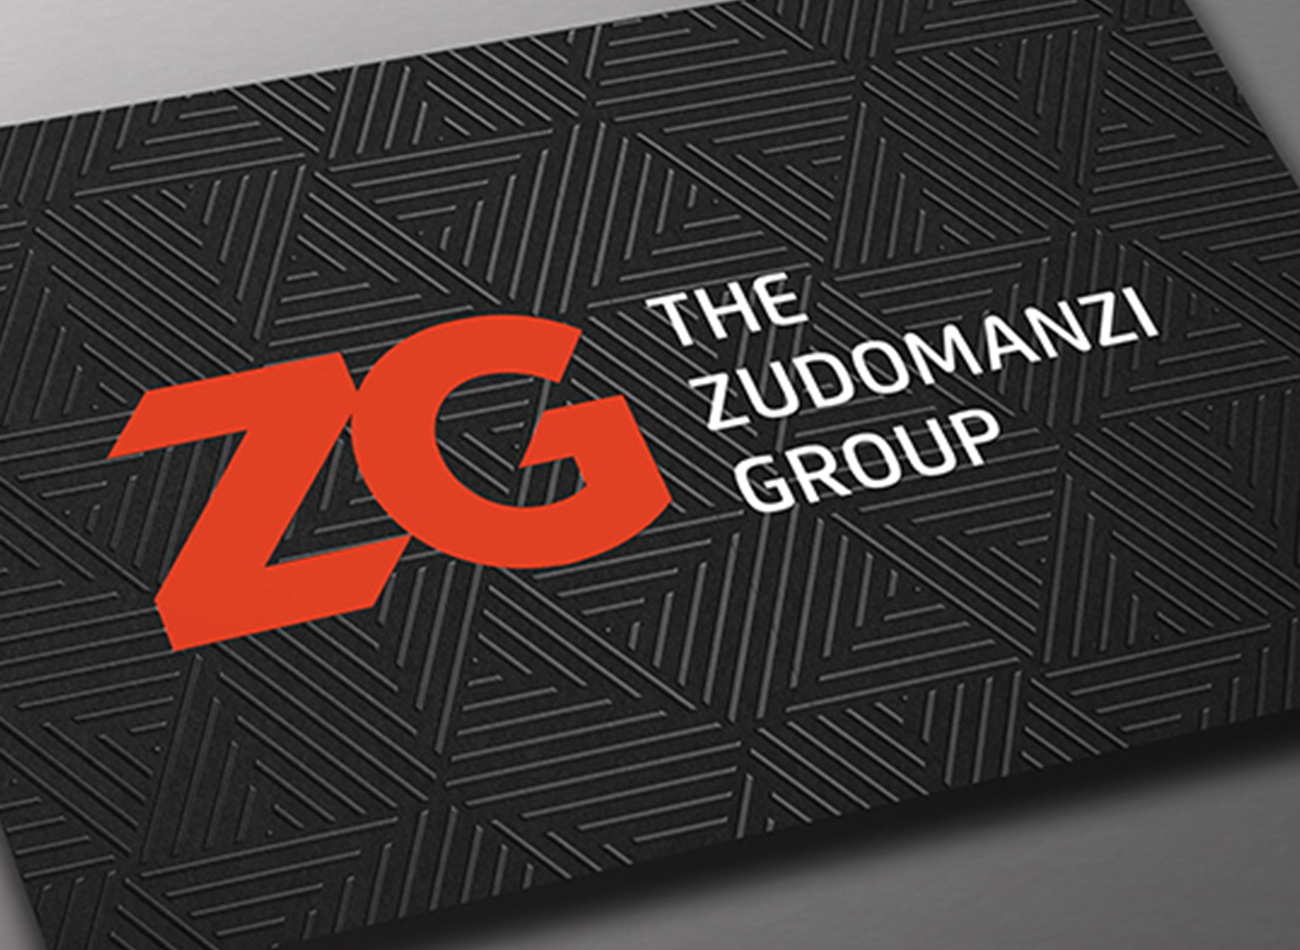 the-zudomanzi-group-logo-design-by-agent-orange-design-south-african-creative-agency.jpg